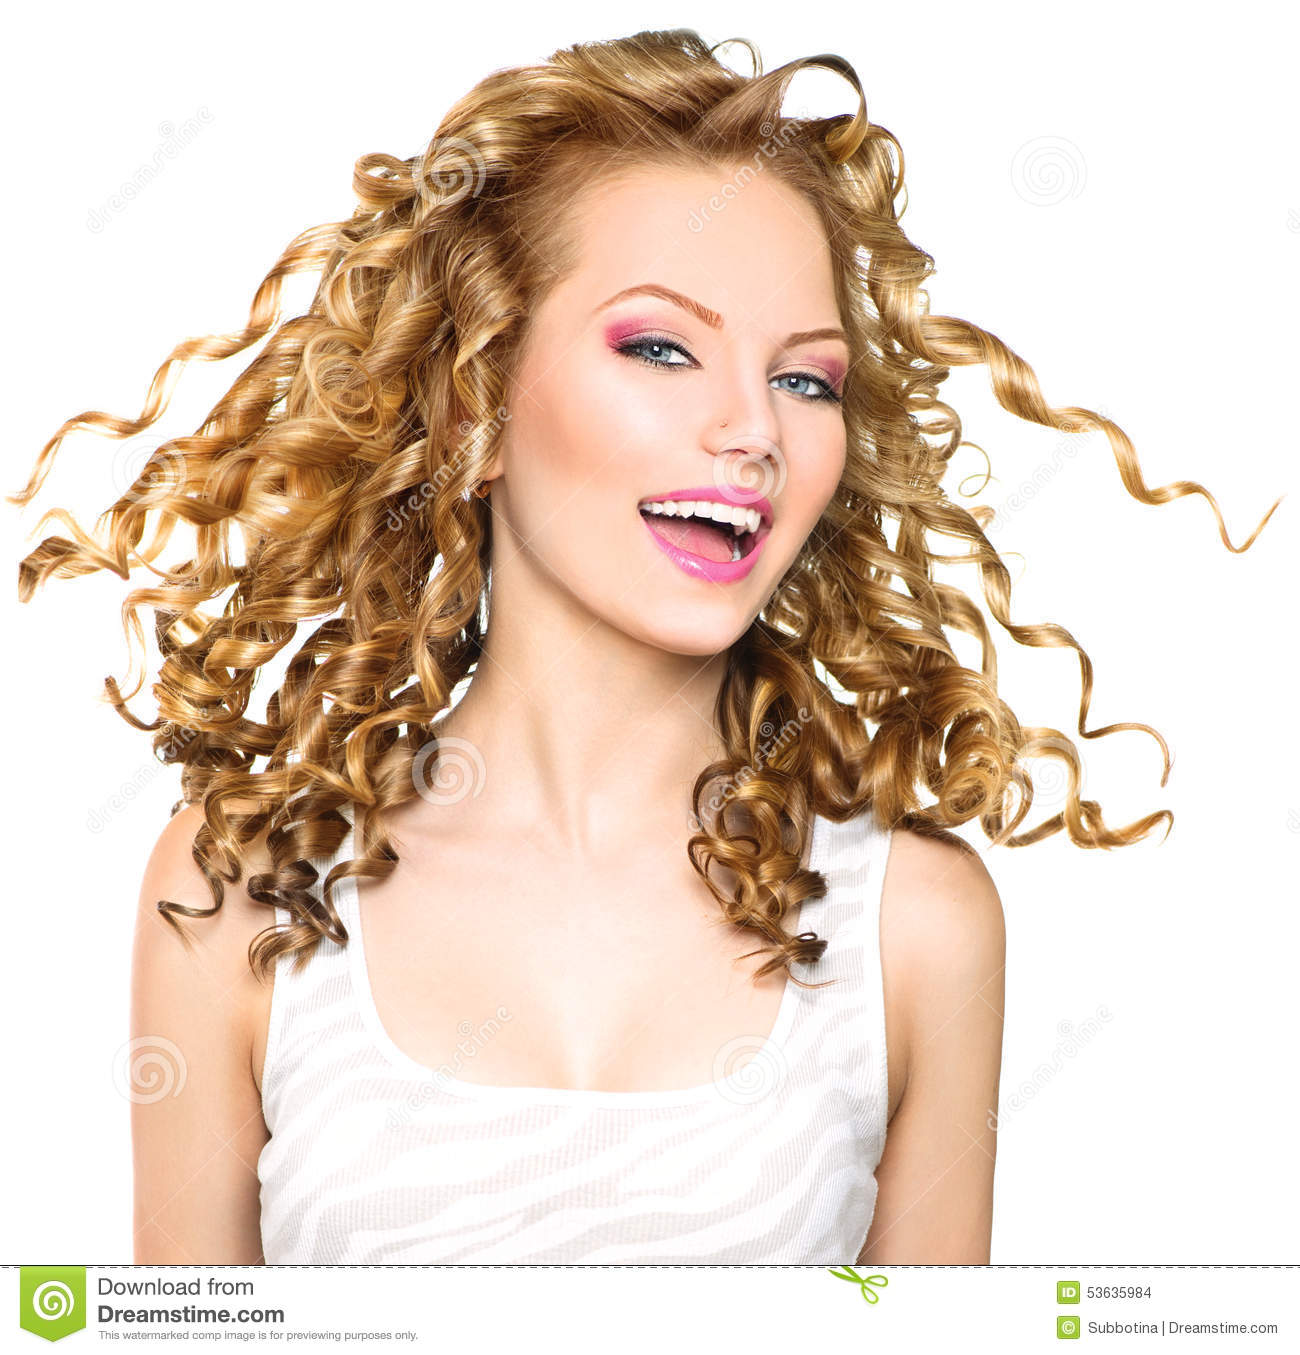 Beauty Model Girl With Blonde Curly Hair Stock Photo - Image: 53635984